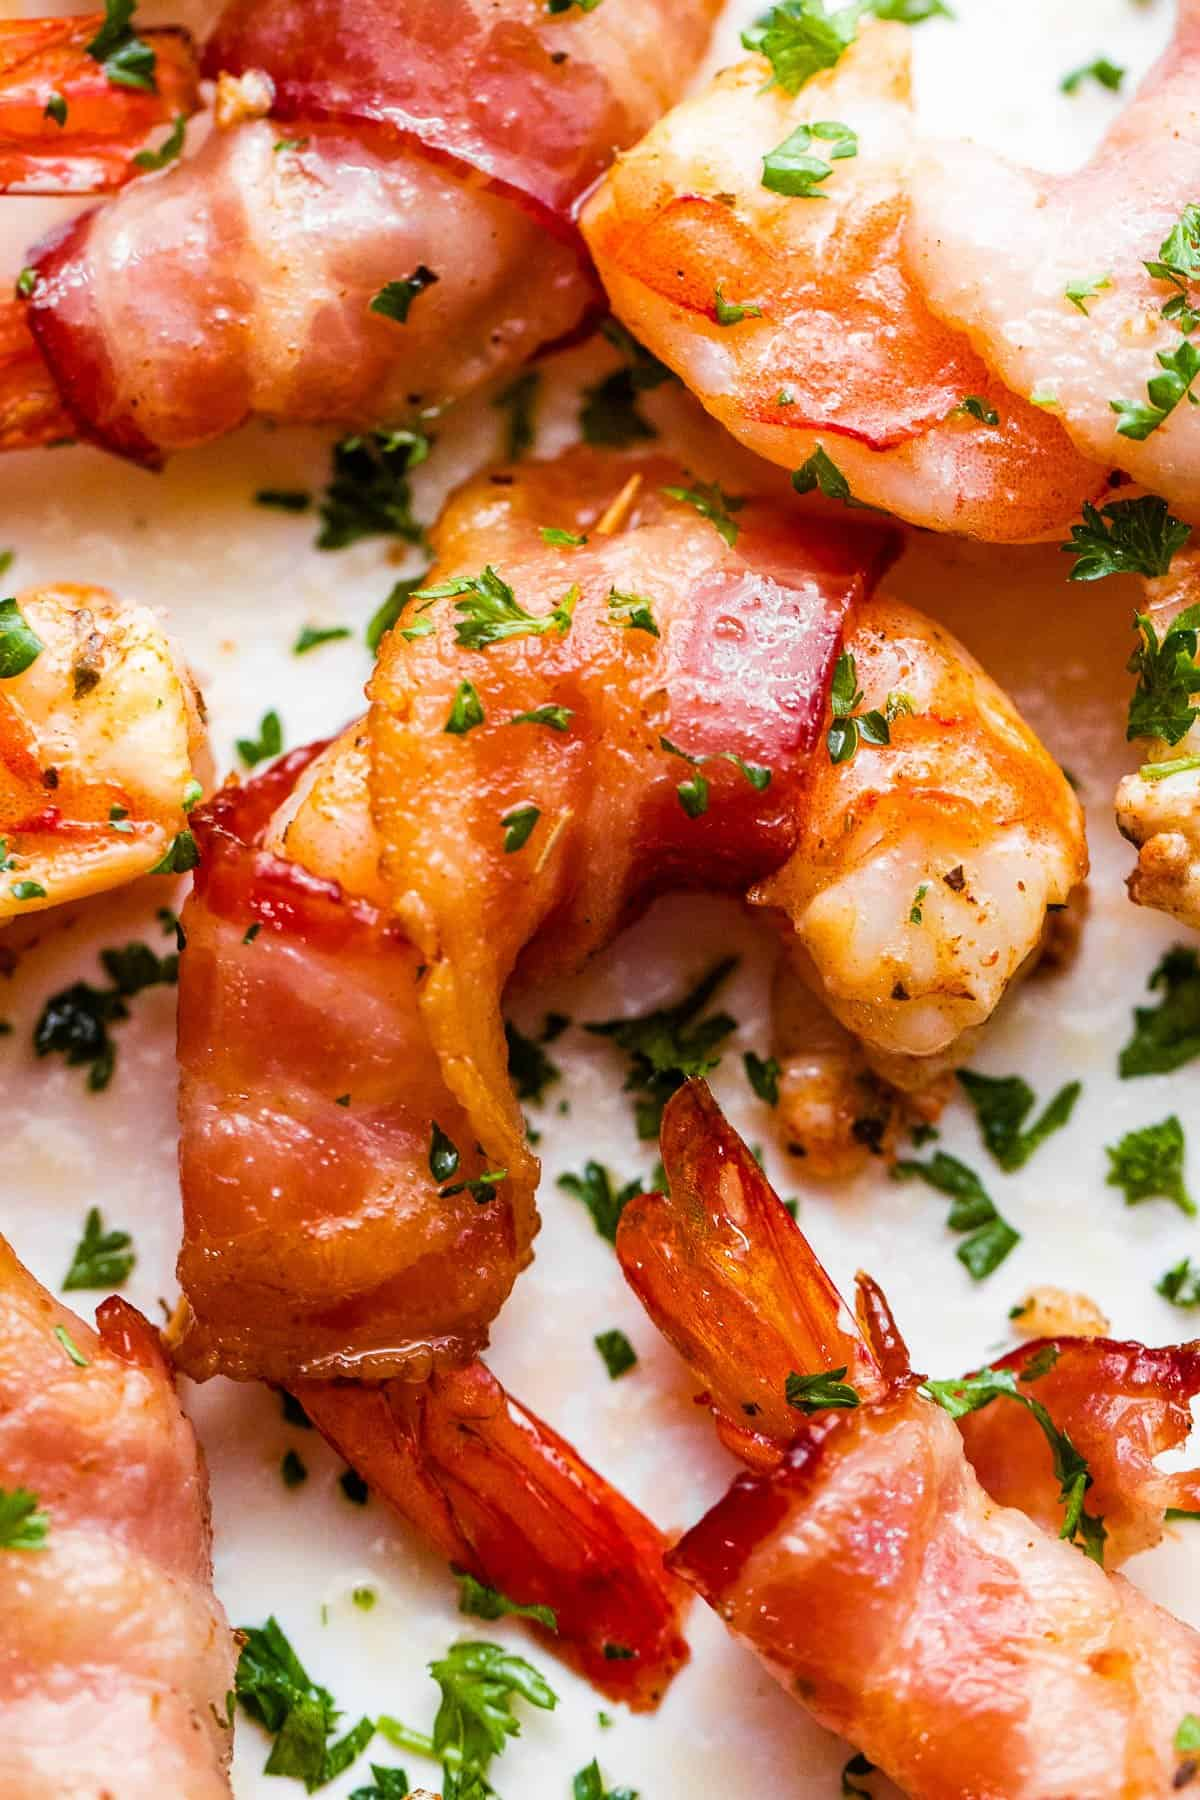 Grilled Bacon Wrapped Shrimp sprinkled with parsley